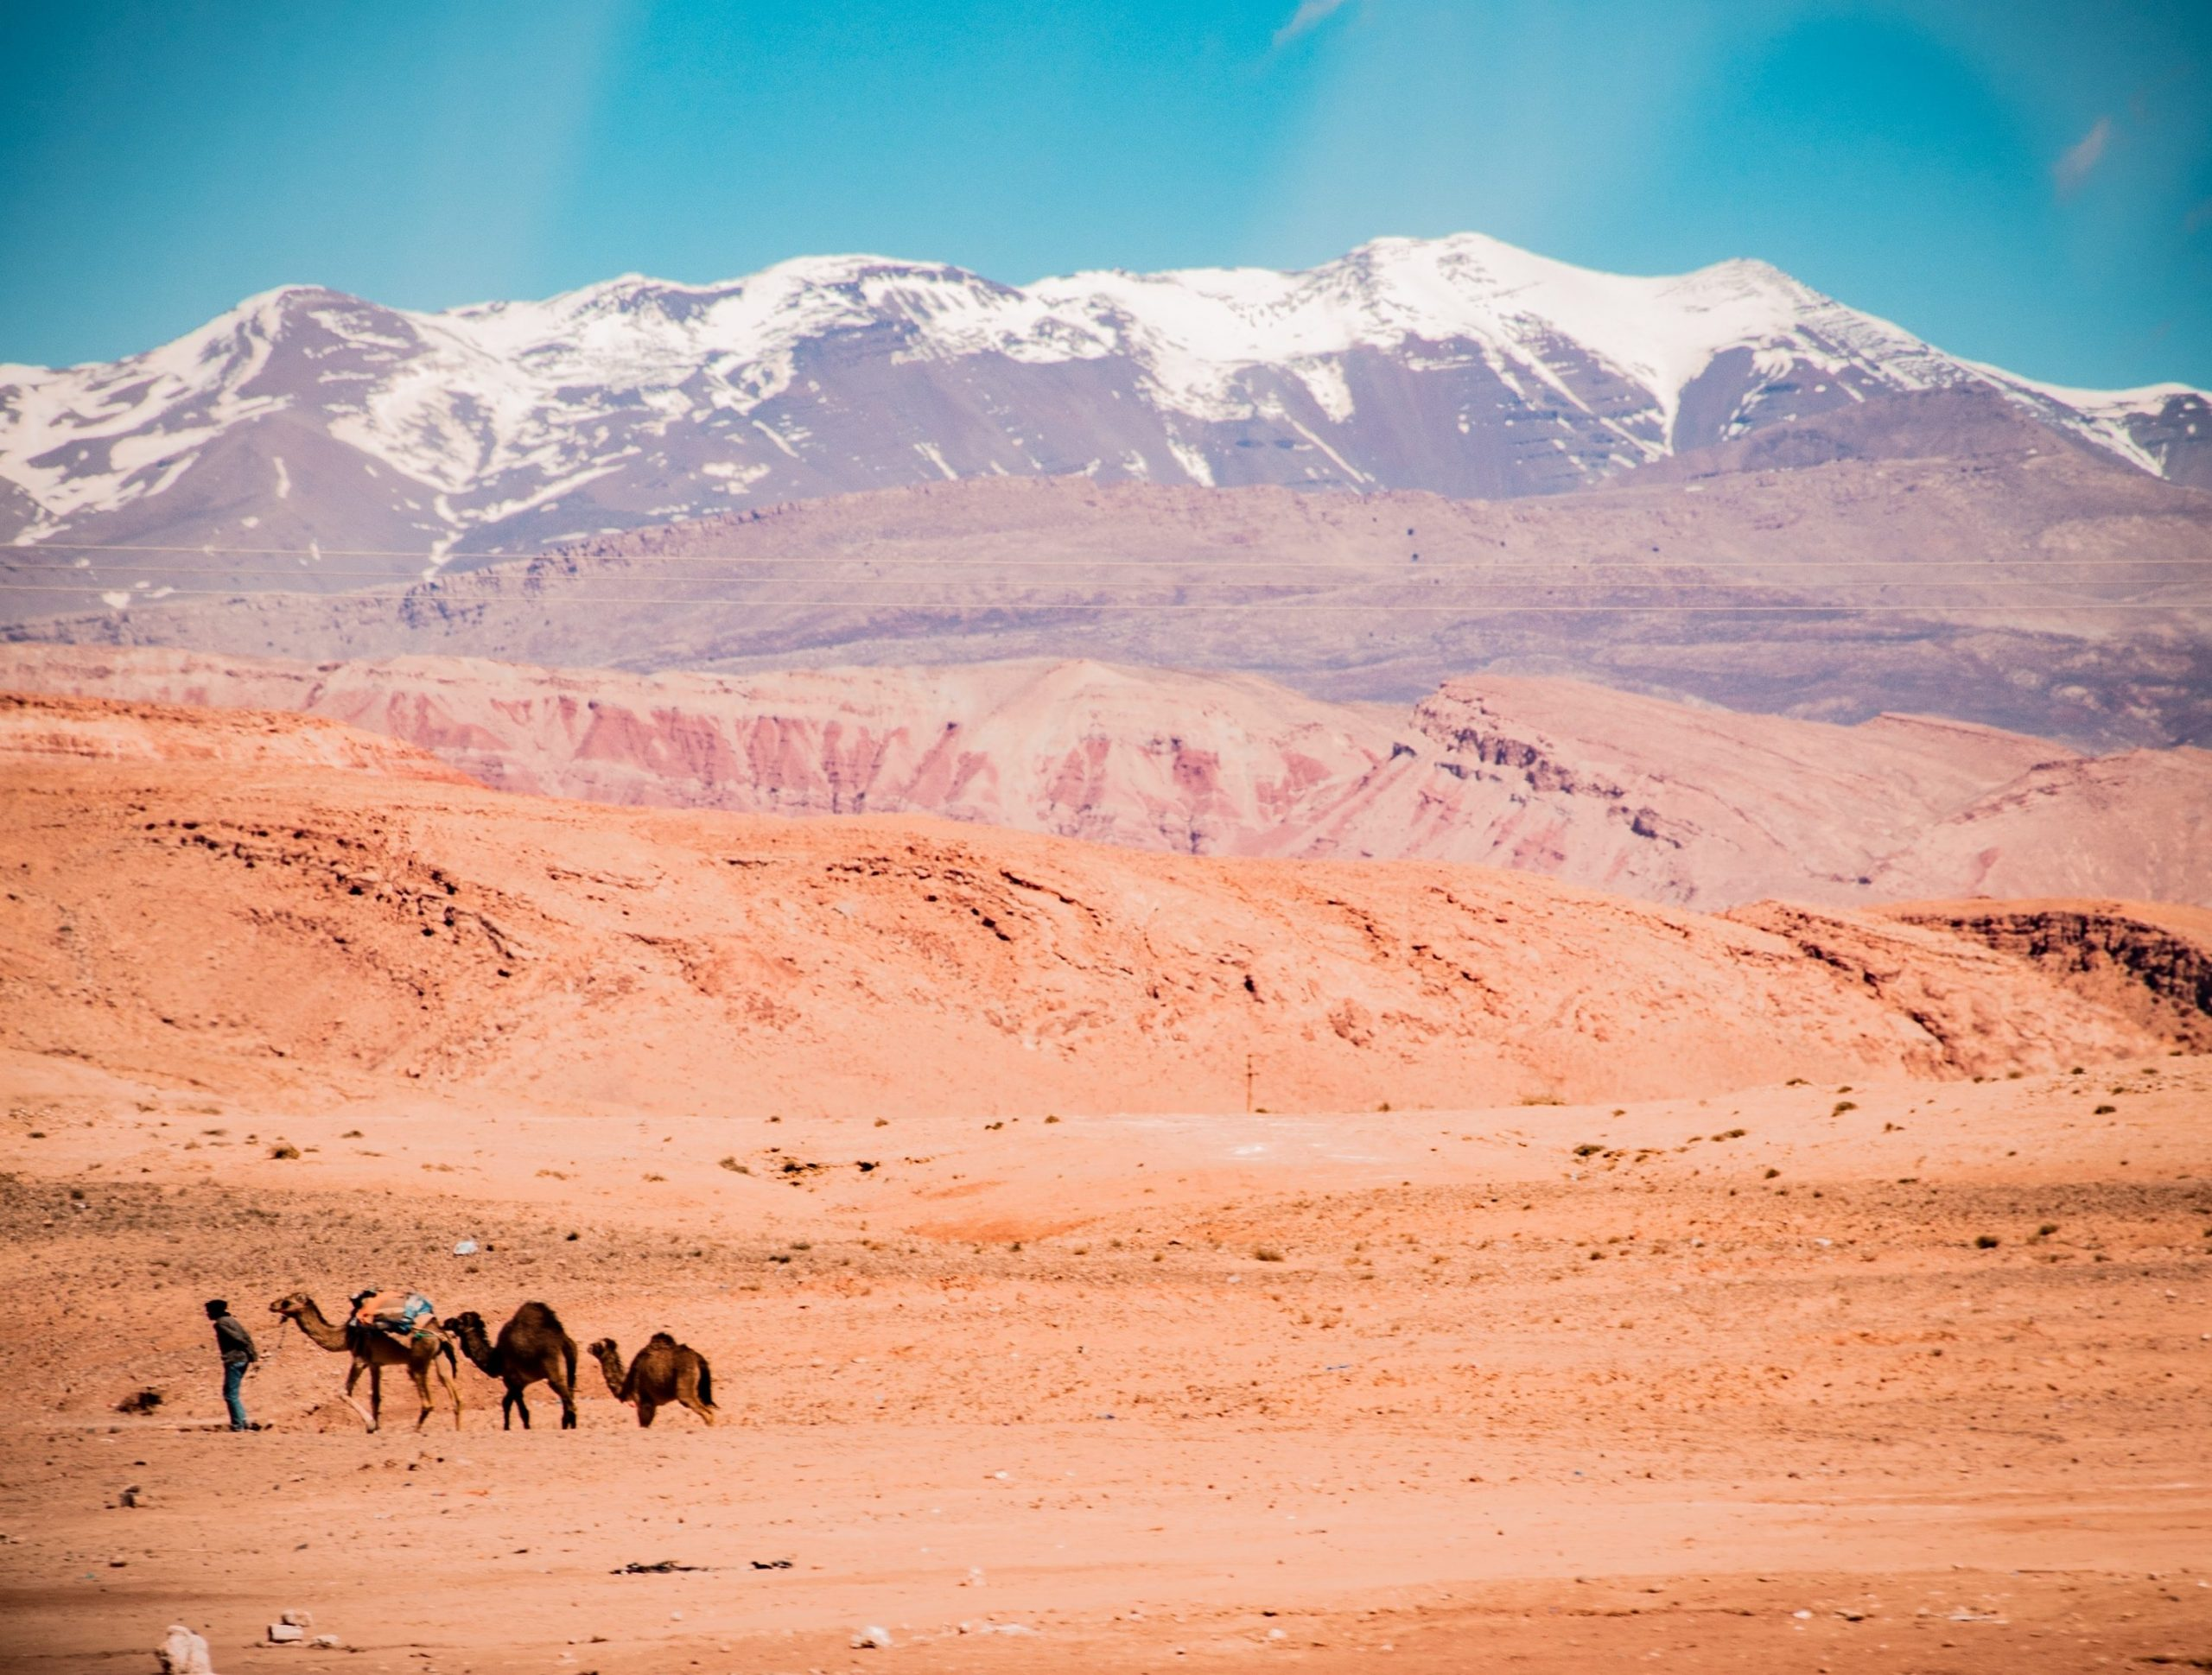 gallery image for Tranquil Morocco